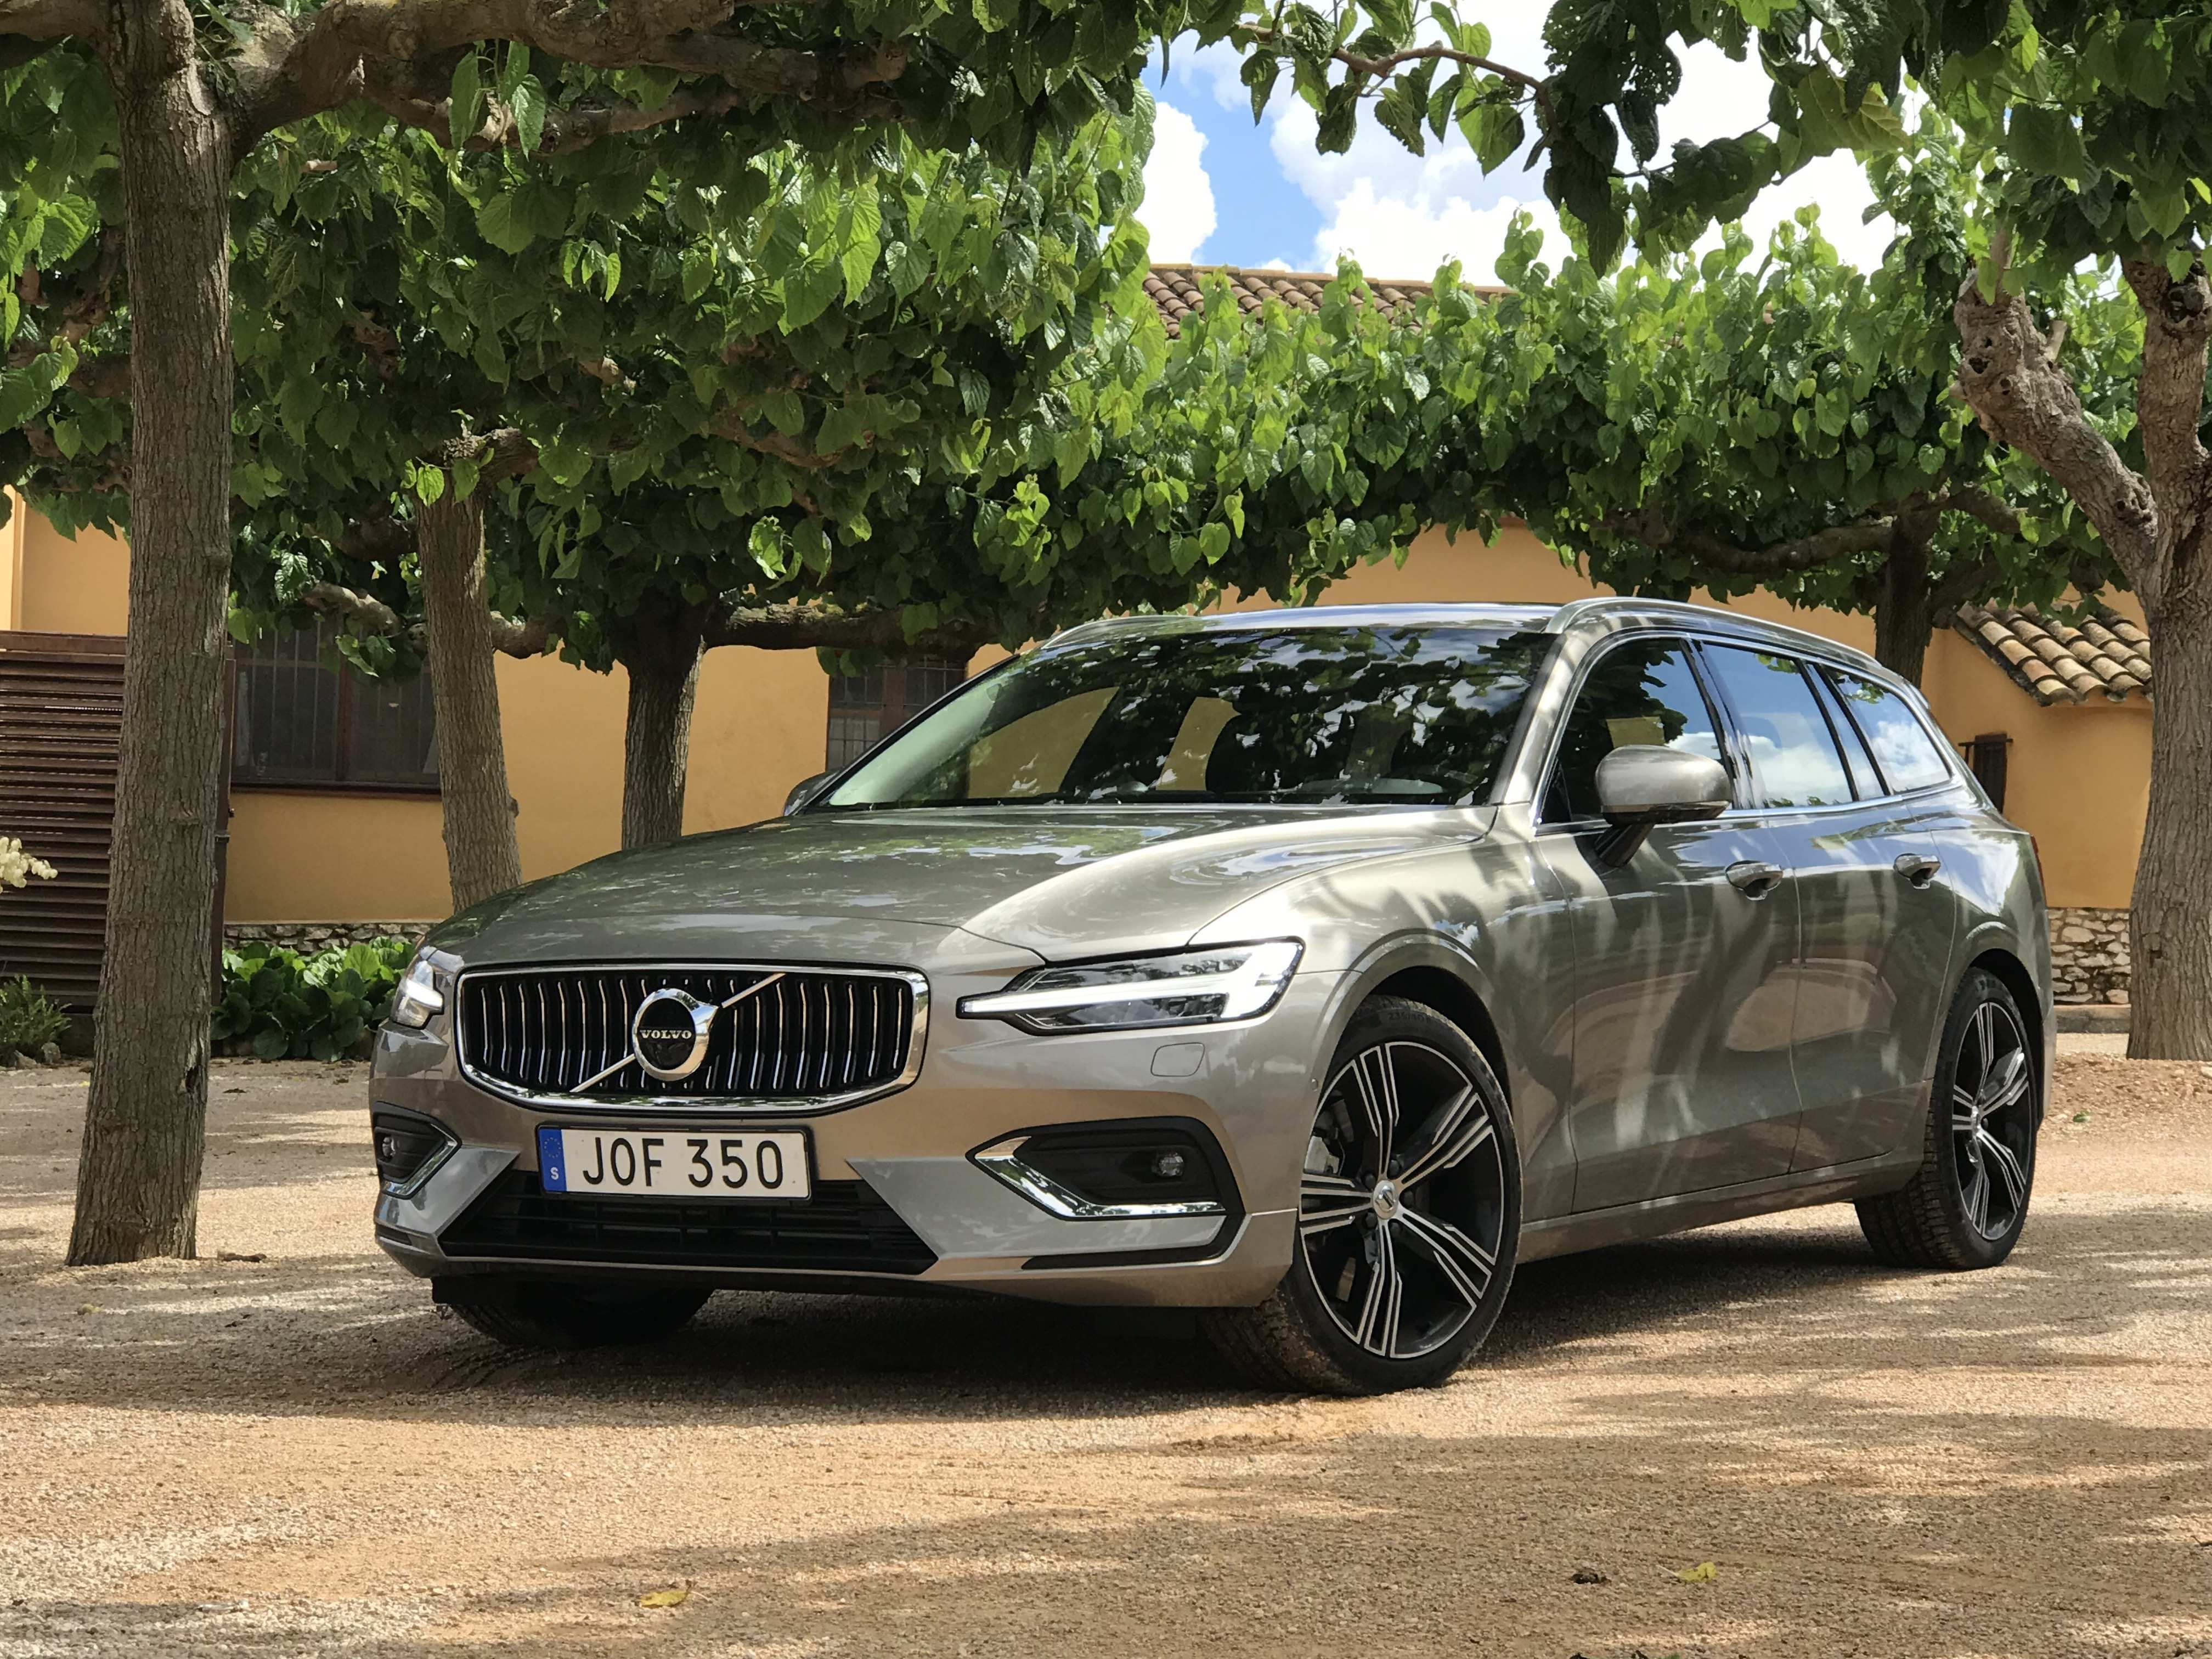 70 Best Review Volvo V60 2020 History with Volvo V60 2020